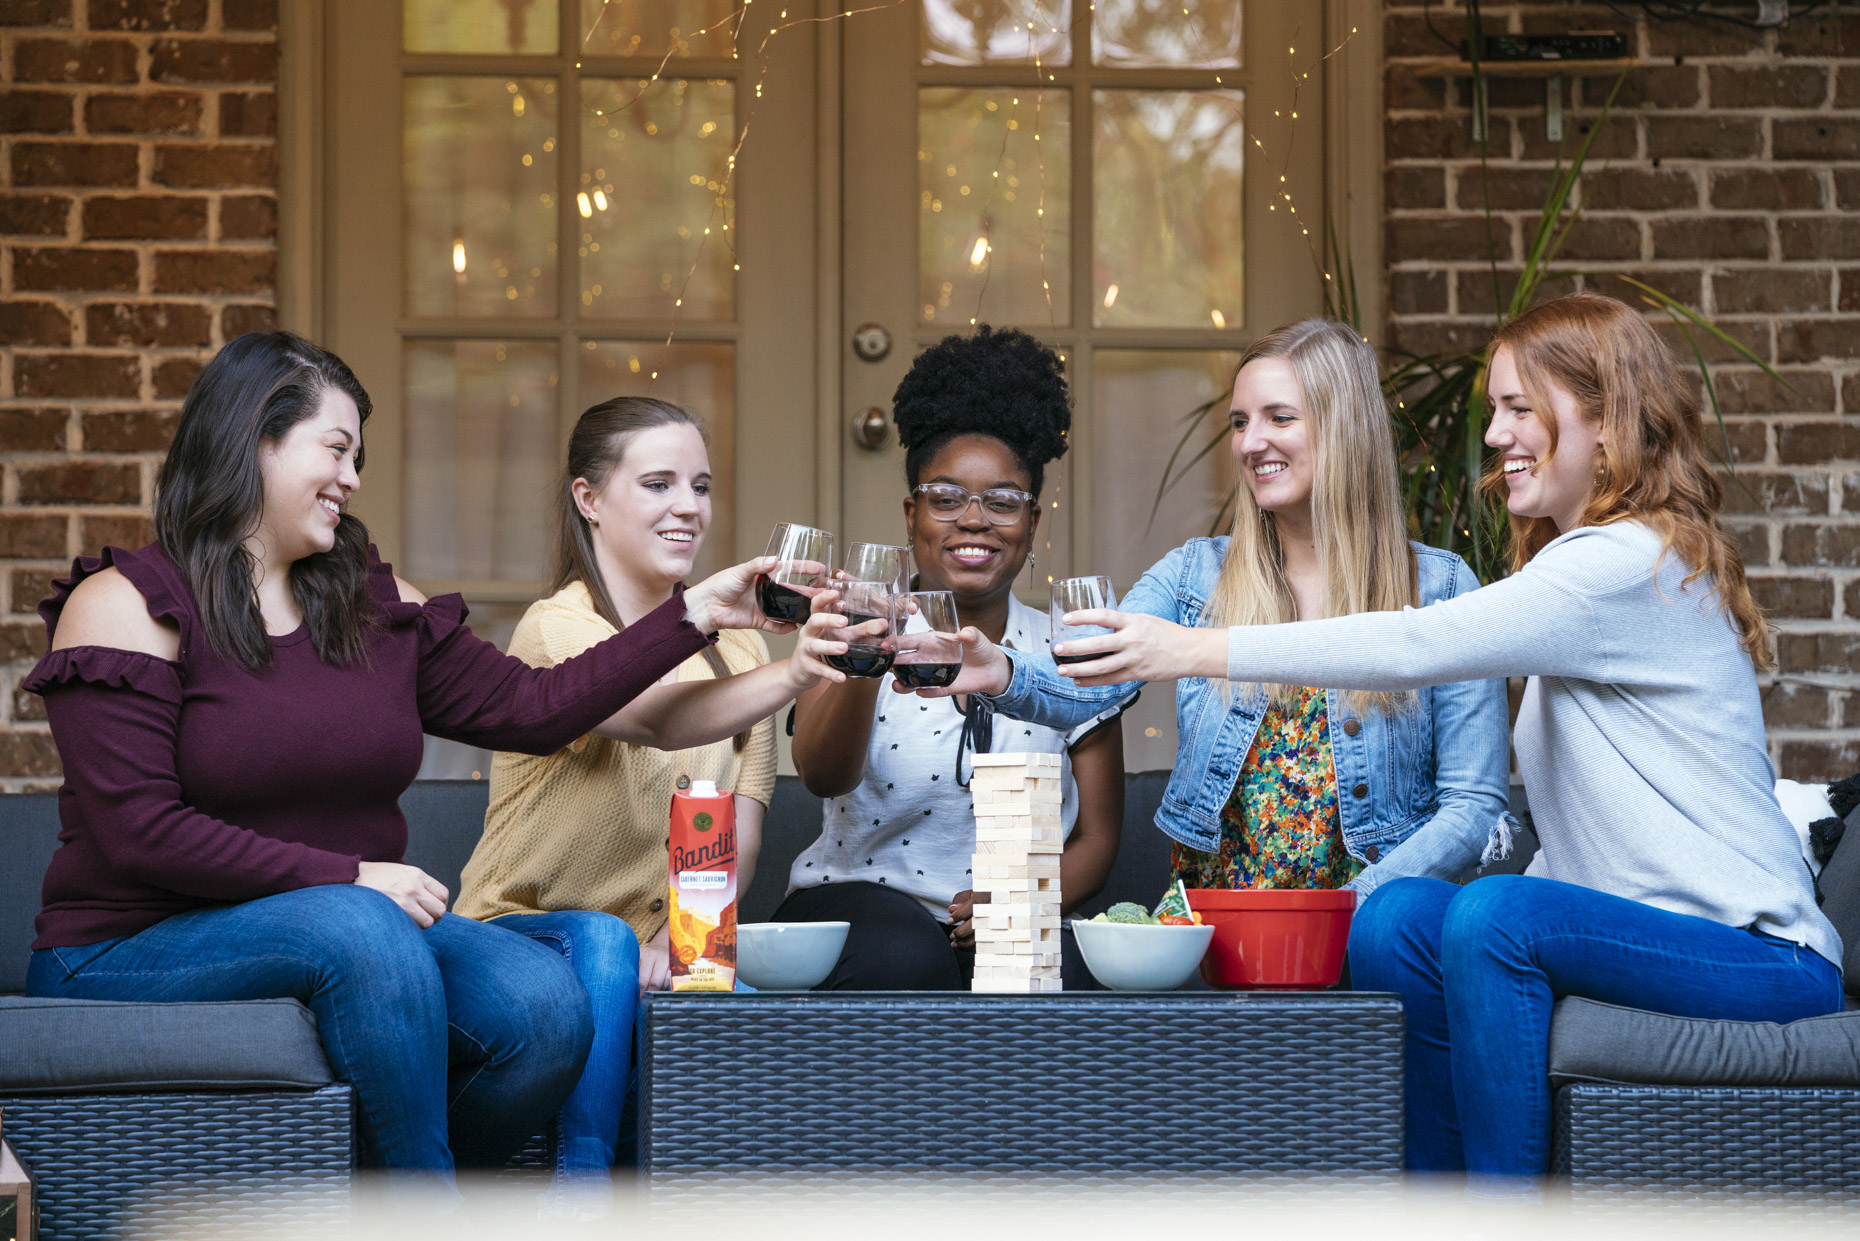 Women toasting with wine at backyard party